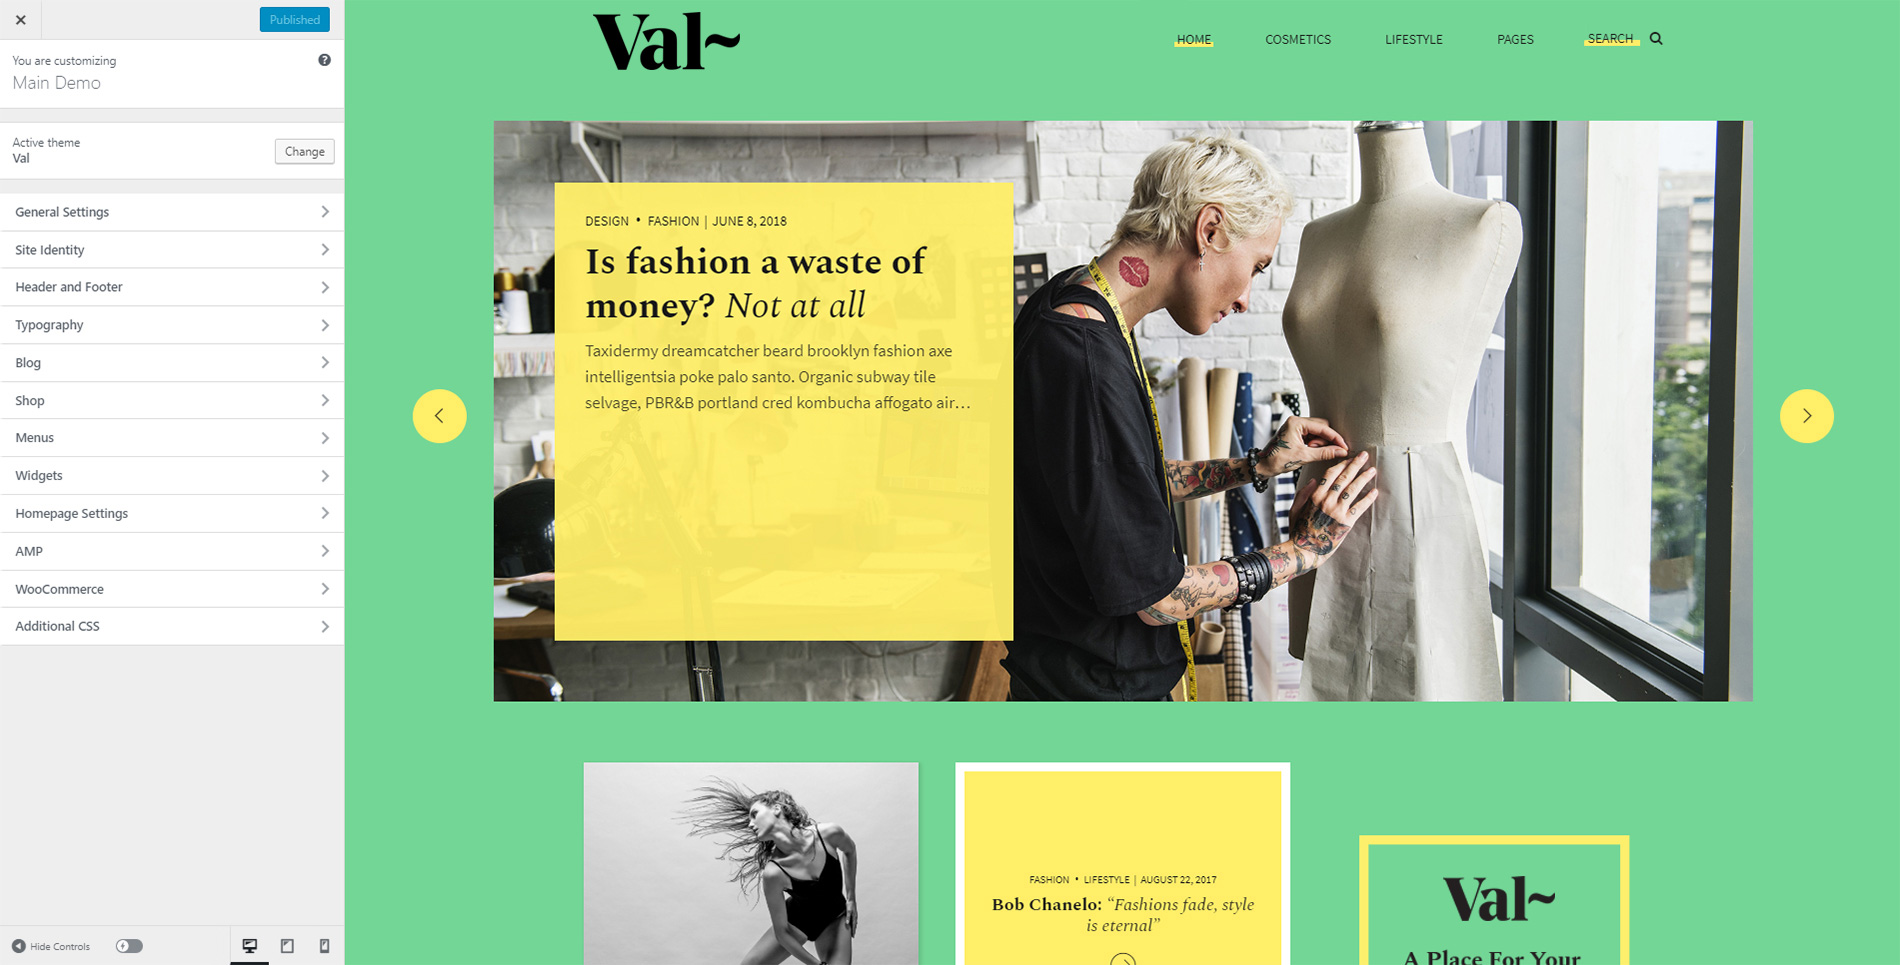 https://documentation.bold-themes.com/val/wp-content/uploads/sites/36/2018/12/val-customize-01.jpg